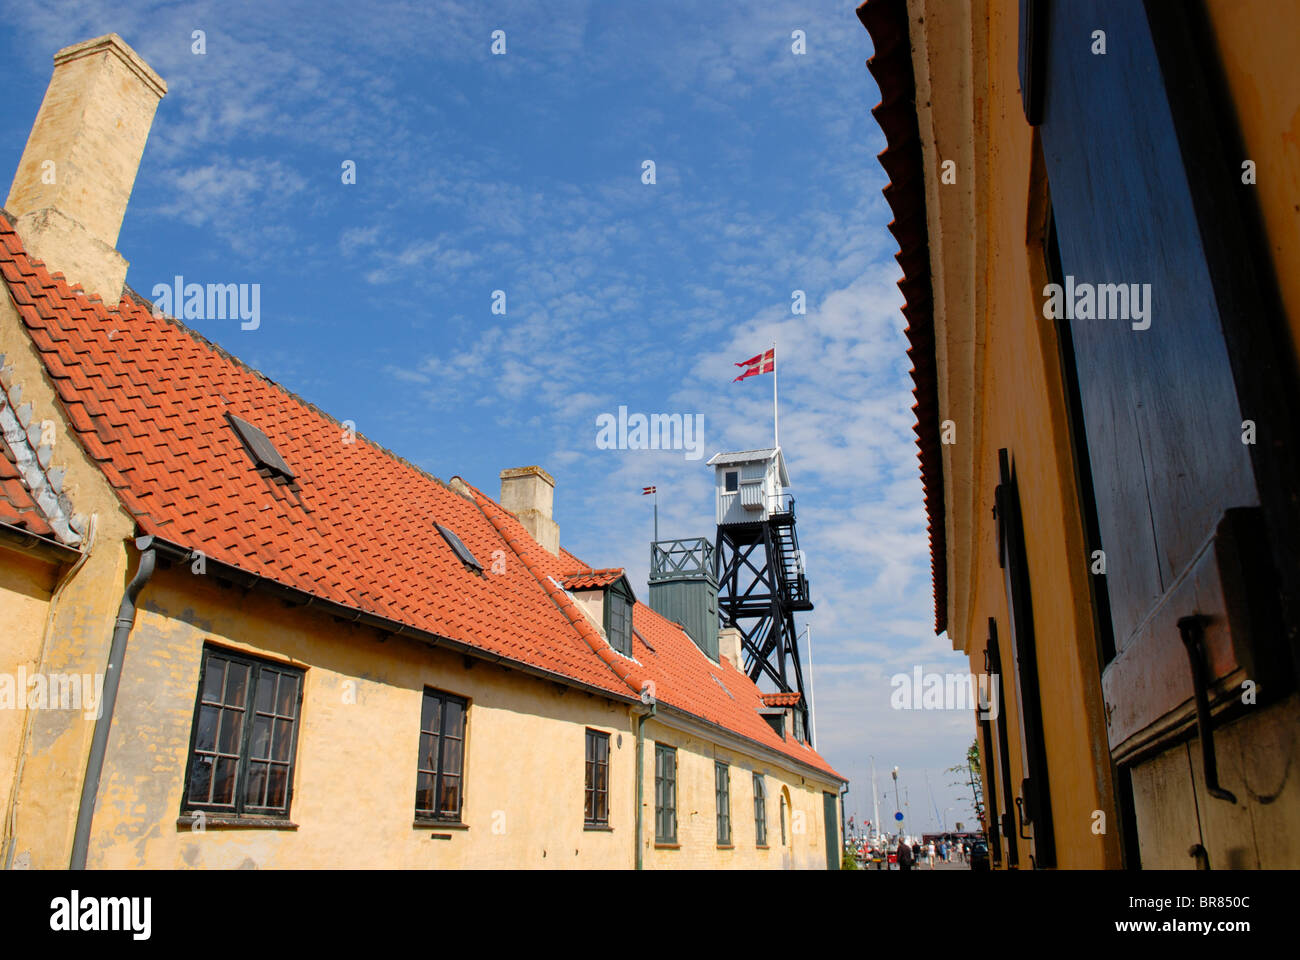 COSY DANISH VILLAGE - Stock Image